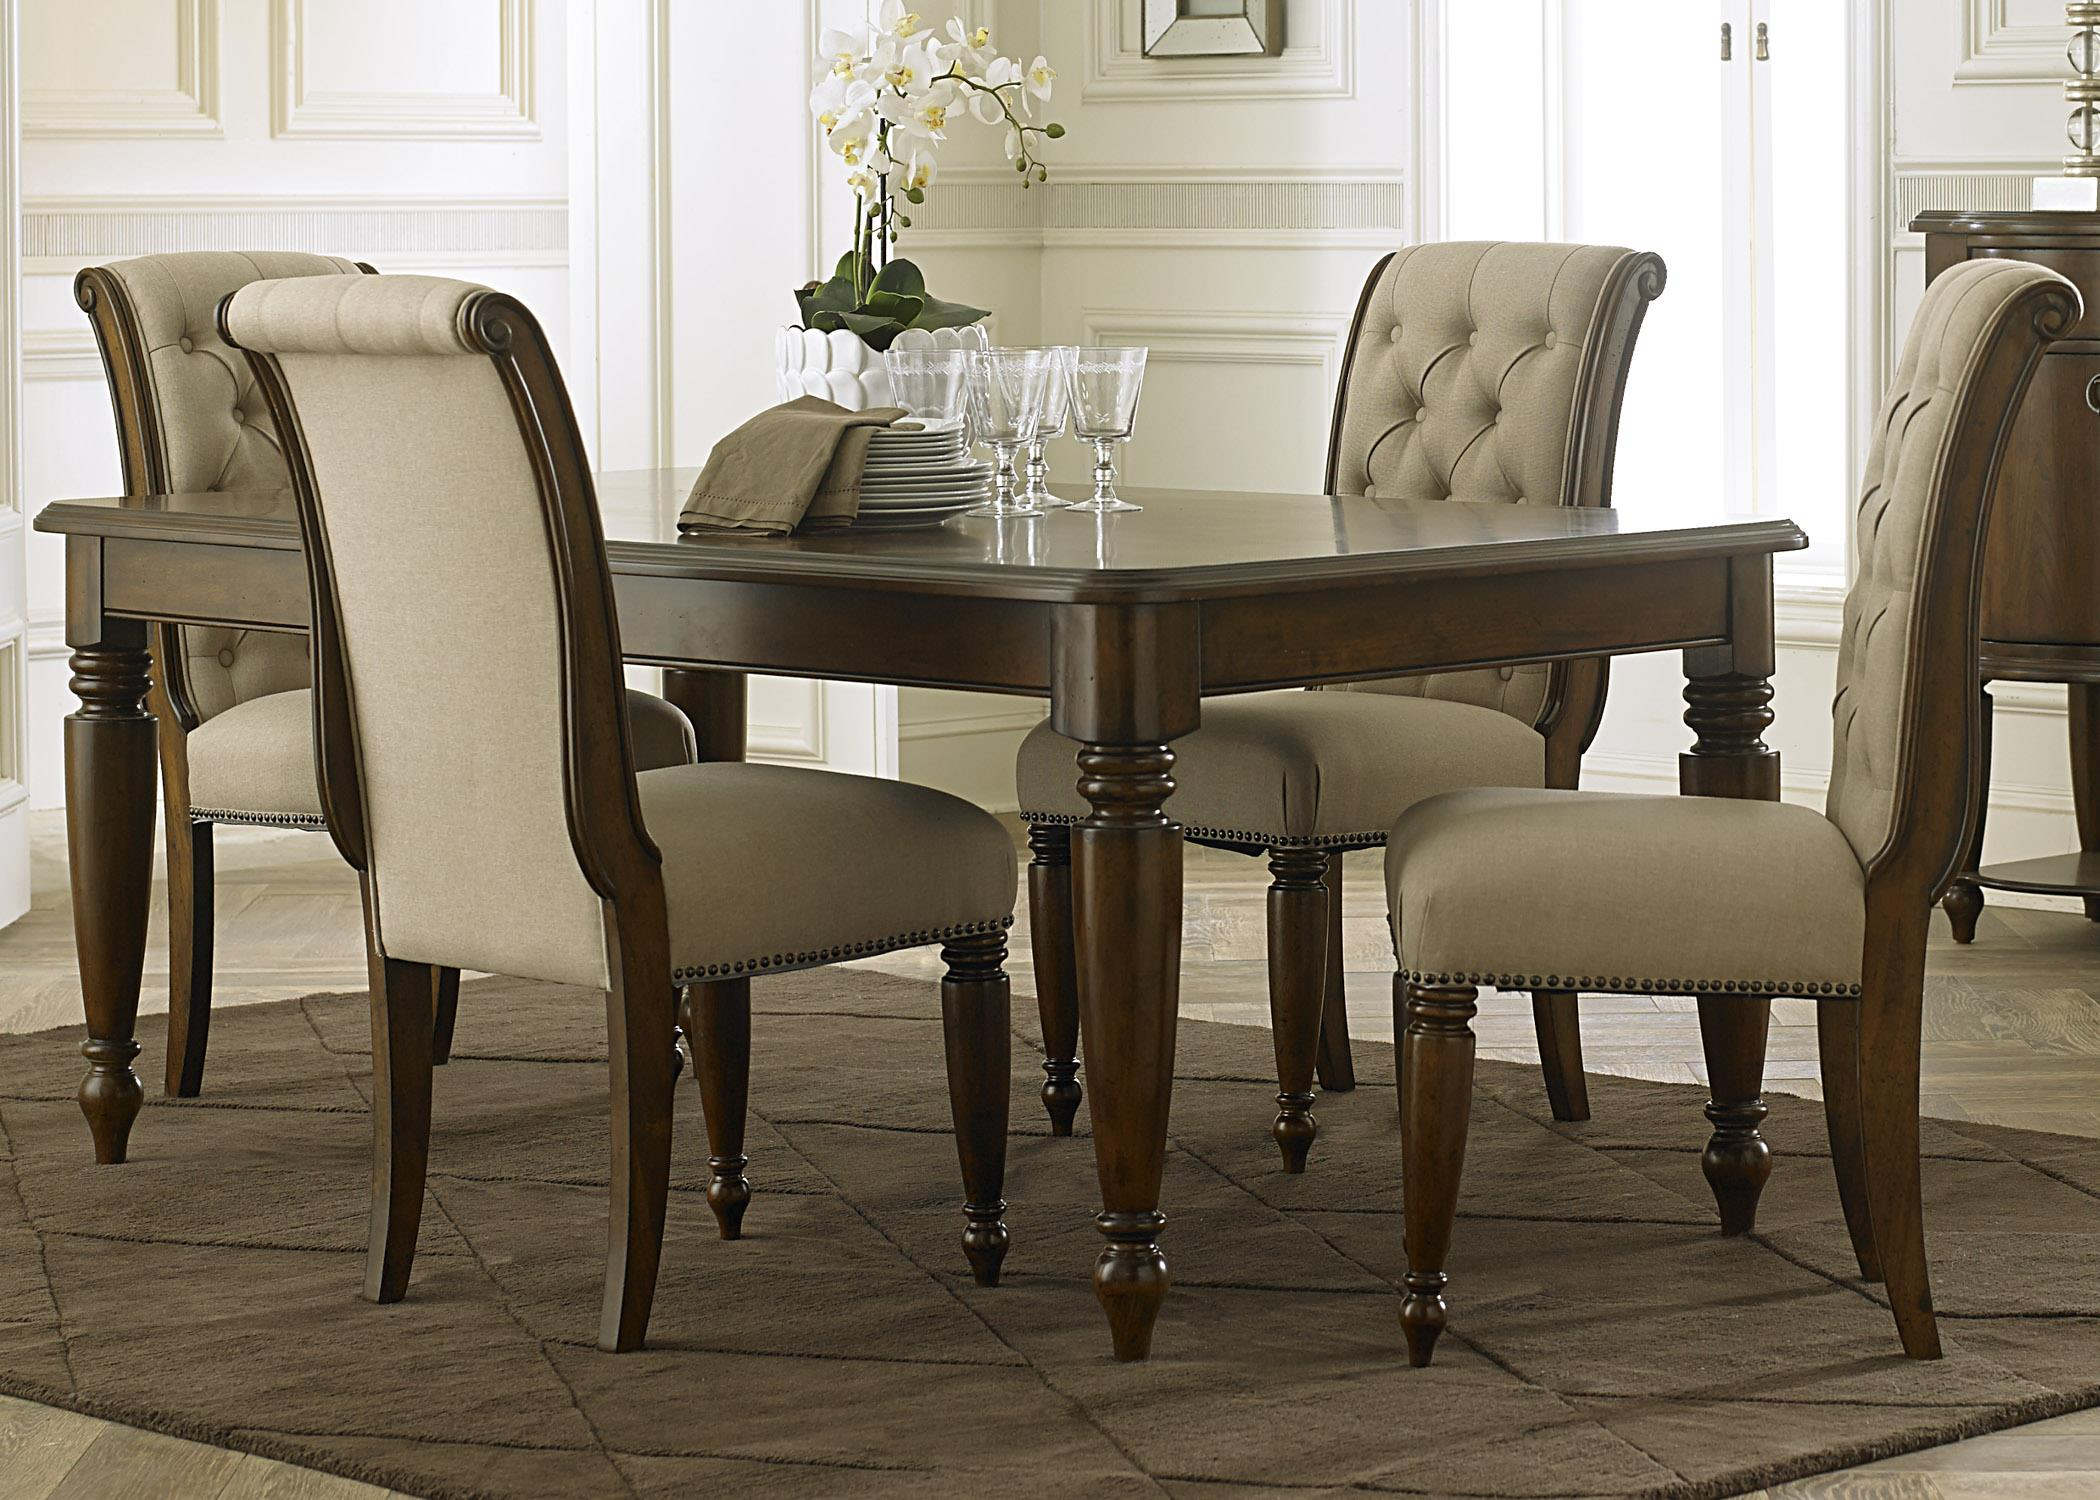 Liberty Furniture Carrington 5 Piece Rectangular Table Set - Item Number: 545-DR-5RLS